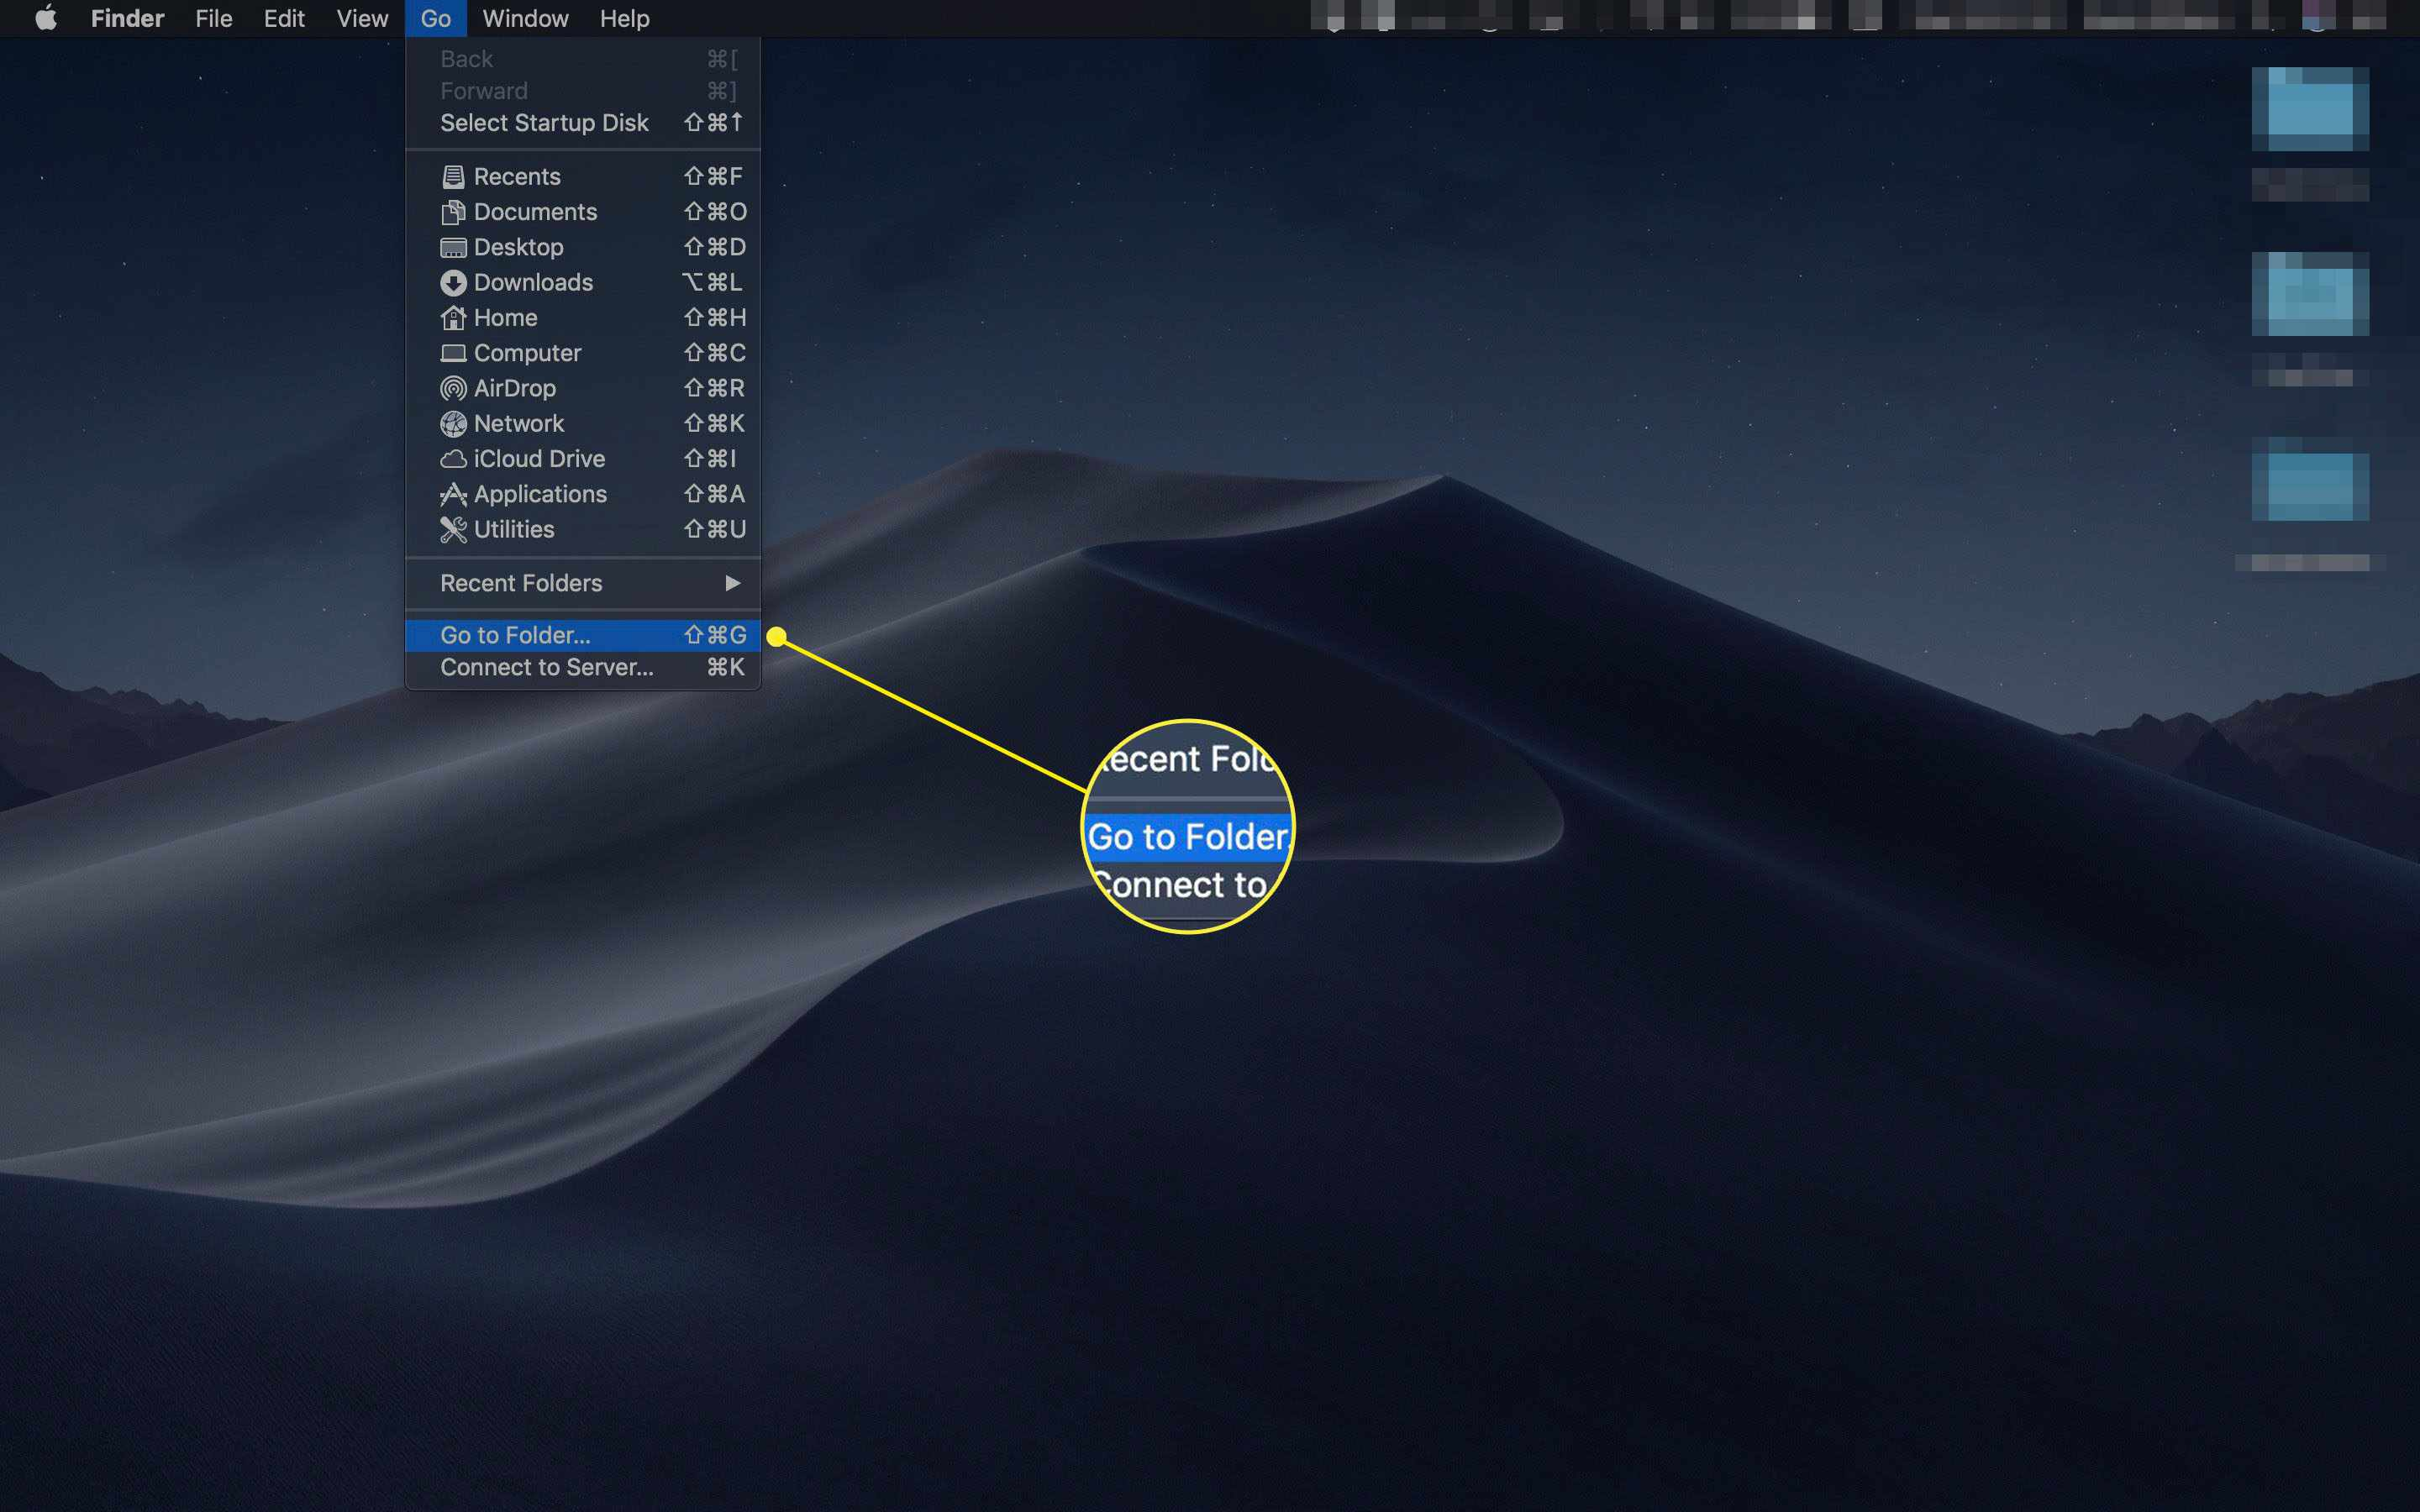 Go to Folder command in Mac Finder